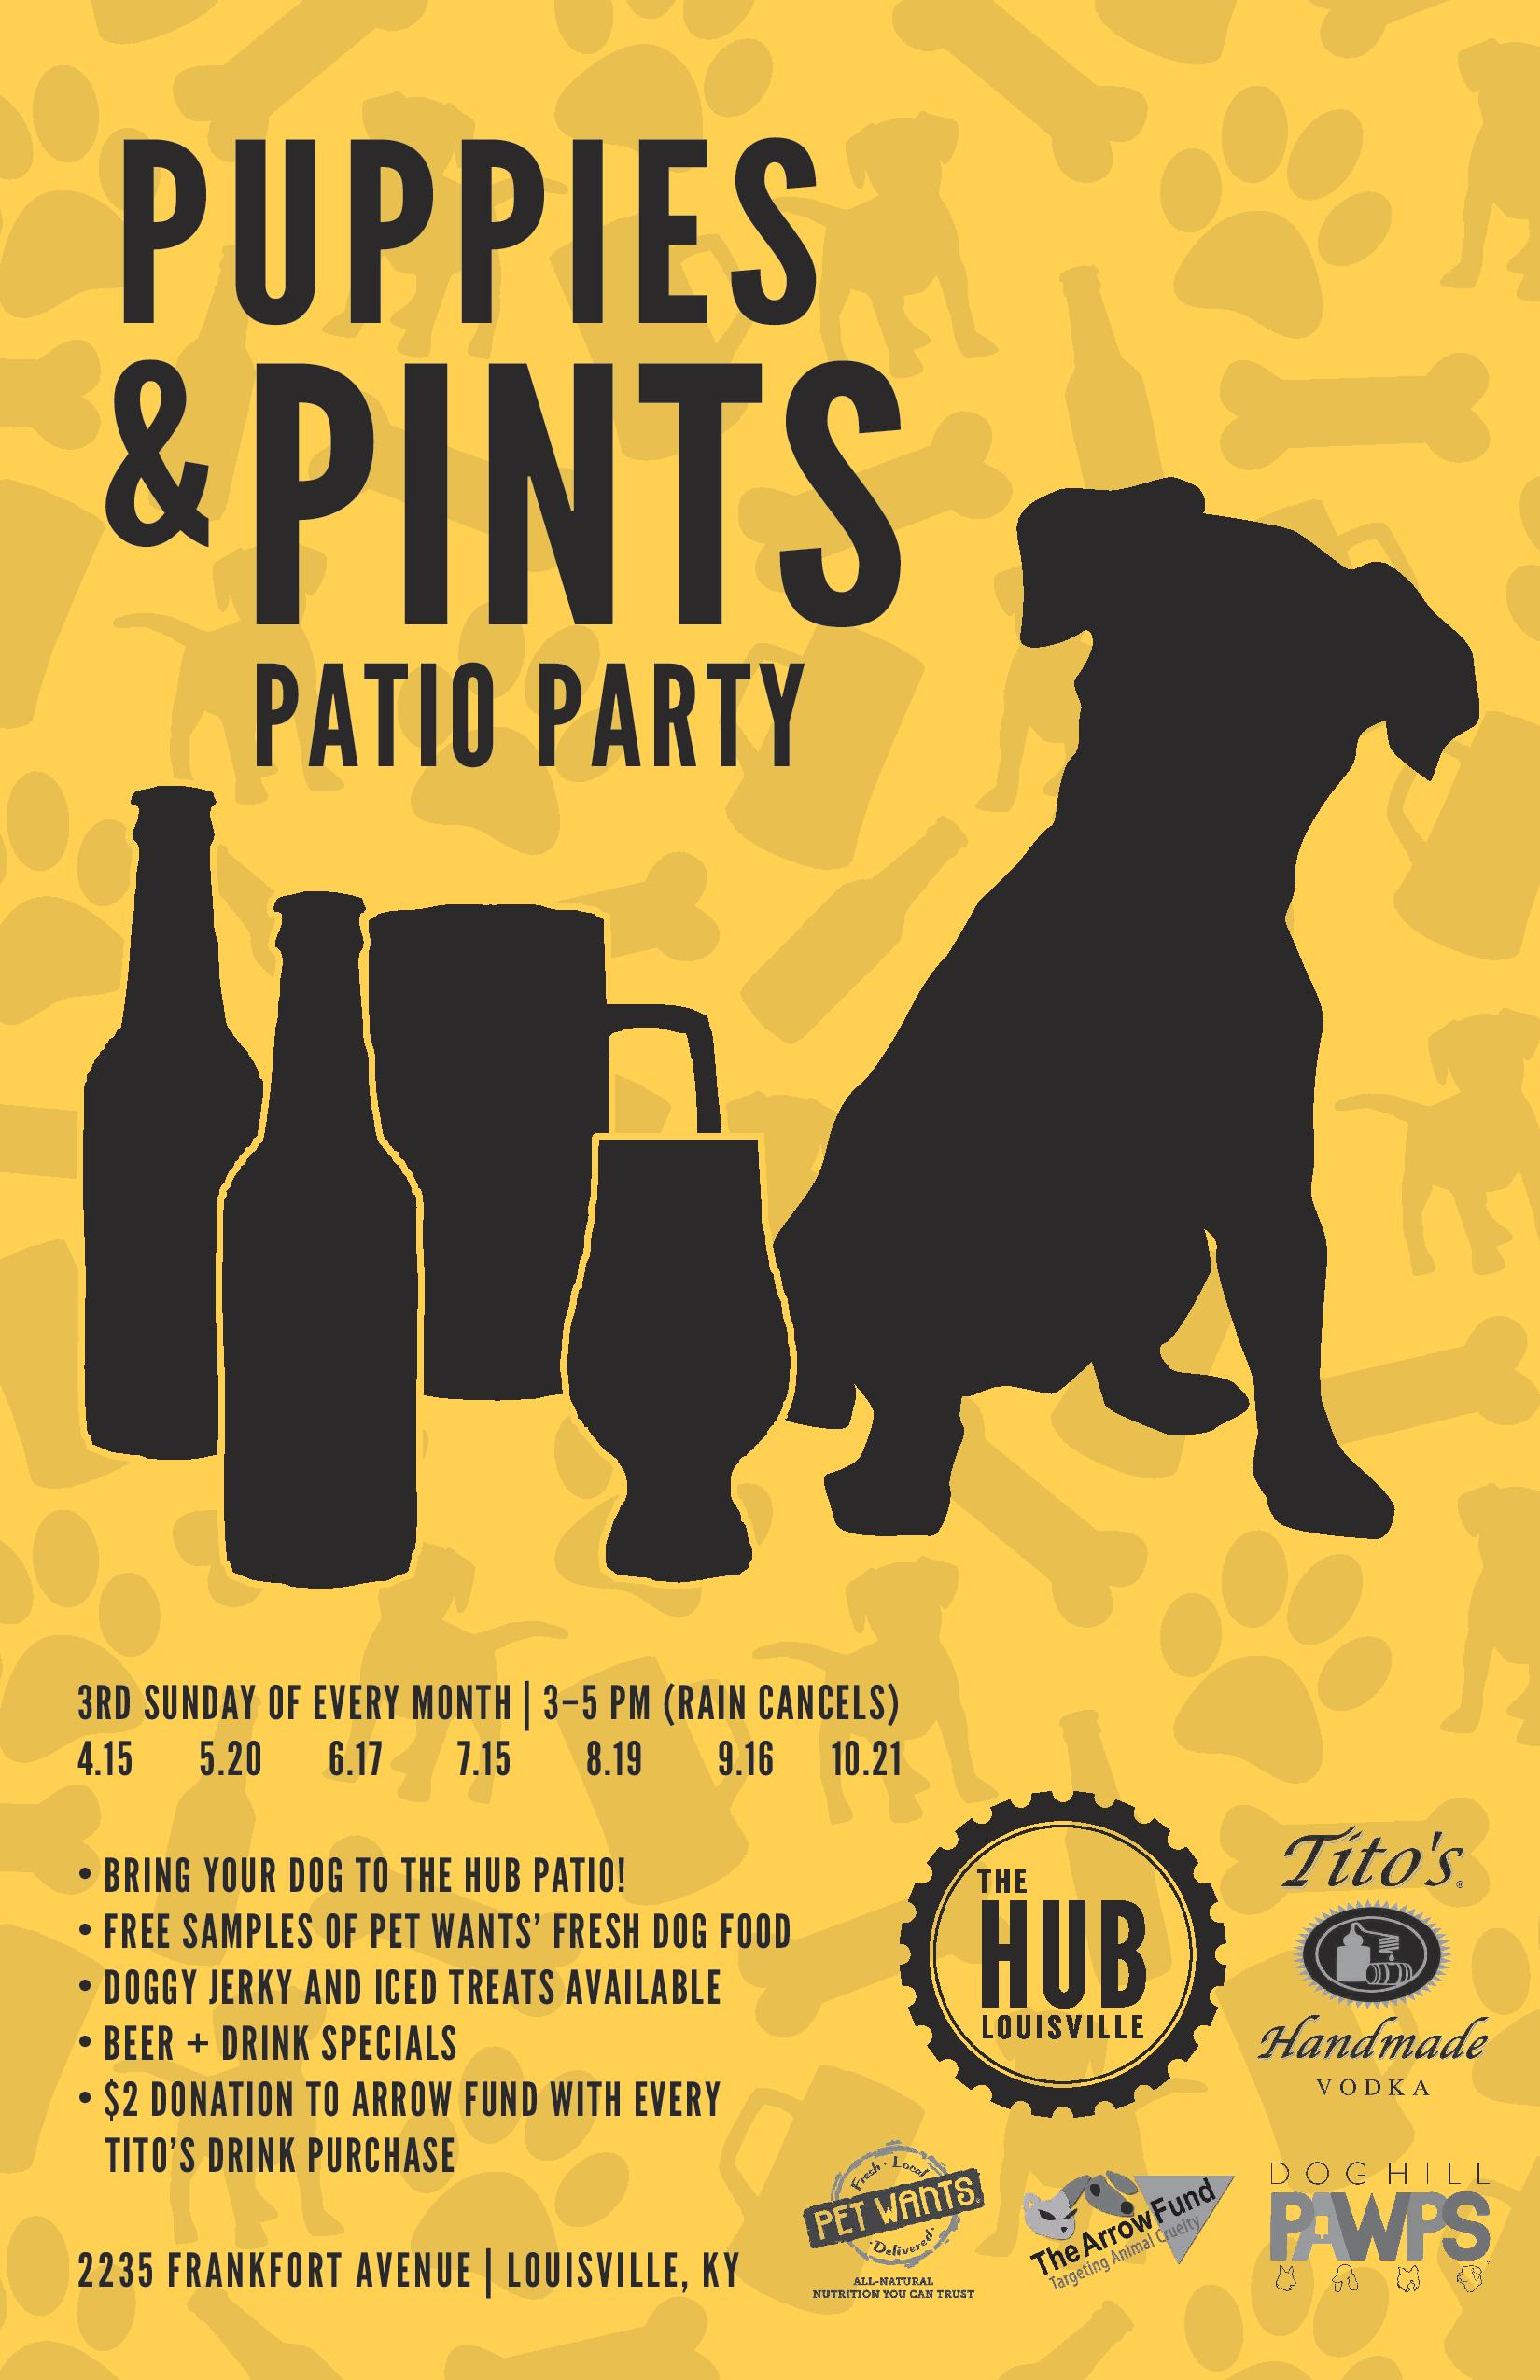 TheHub_PuppiesAndPints_Poster_2108-page-001.jpg